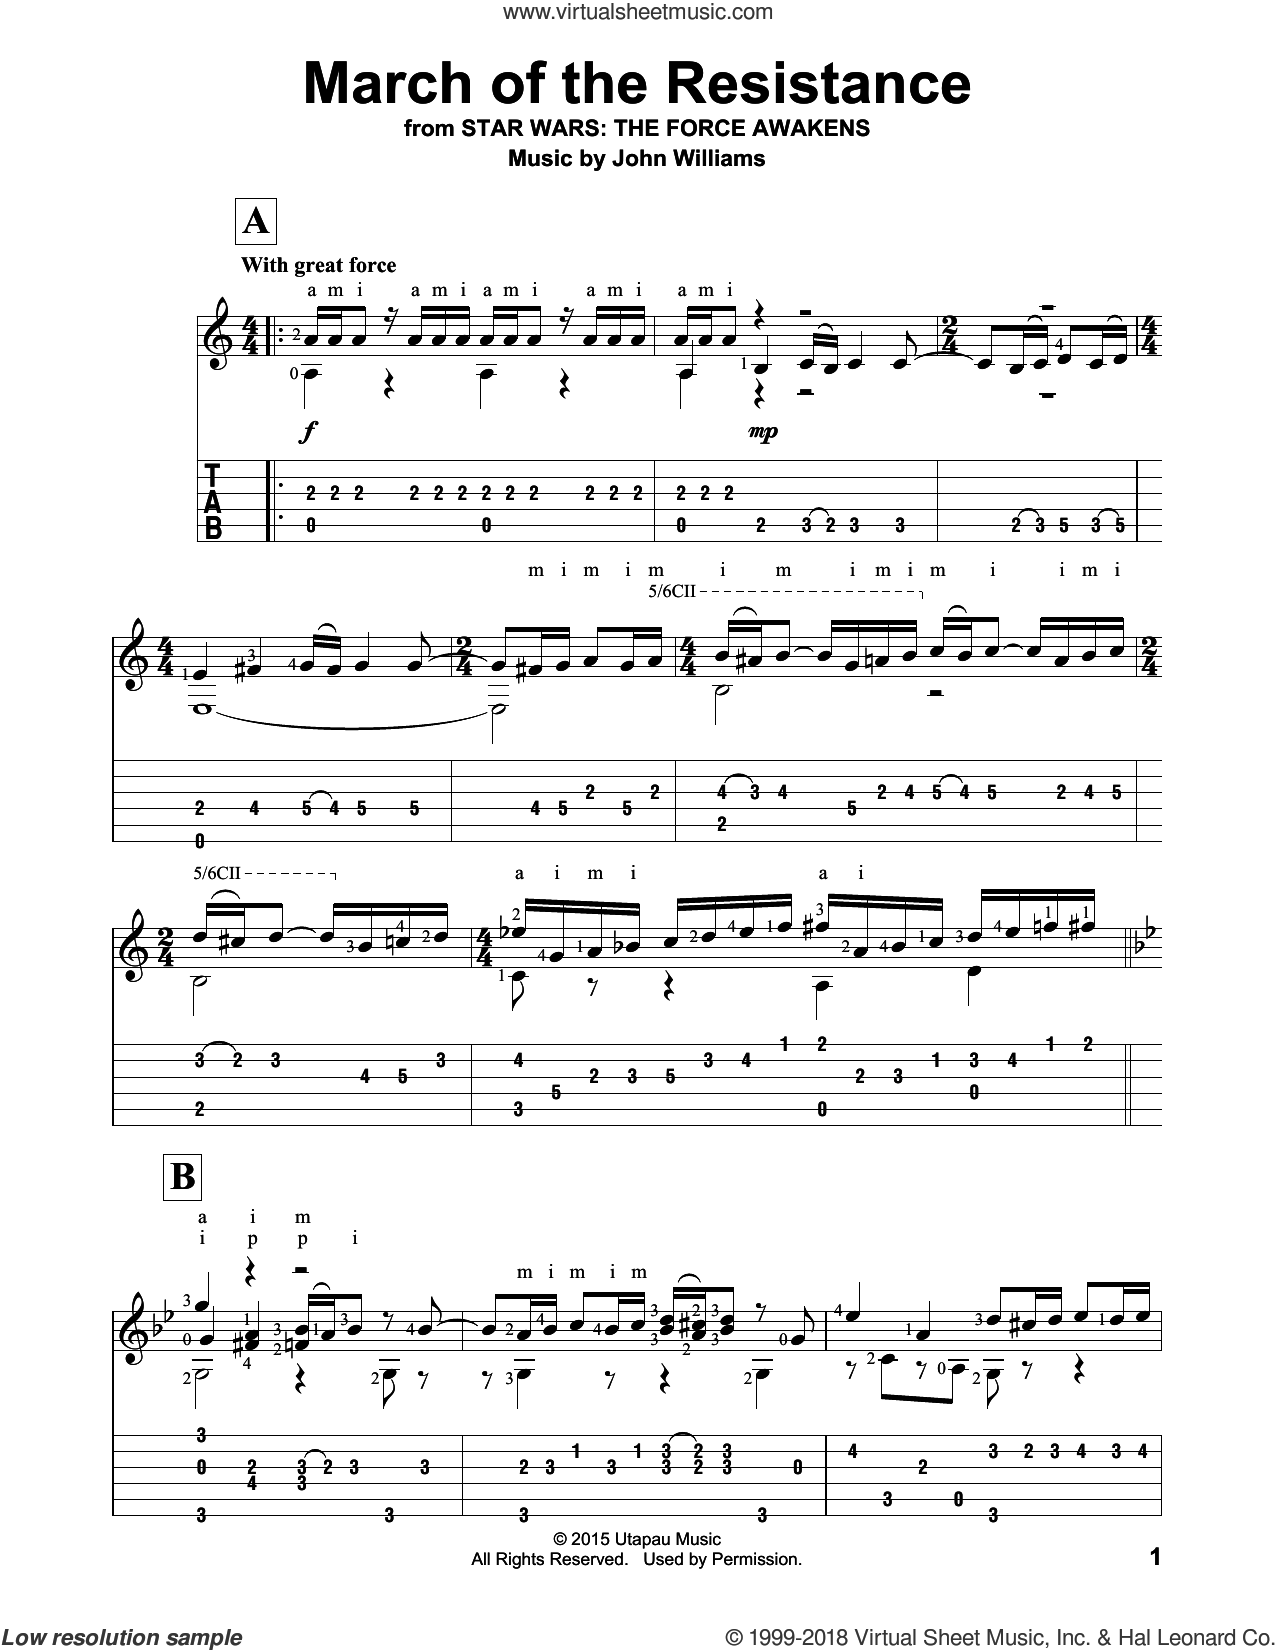 March Of The Resistance sheet music for guitar solo by John Williams, intermediate guitar. Score Image Preview.